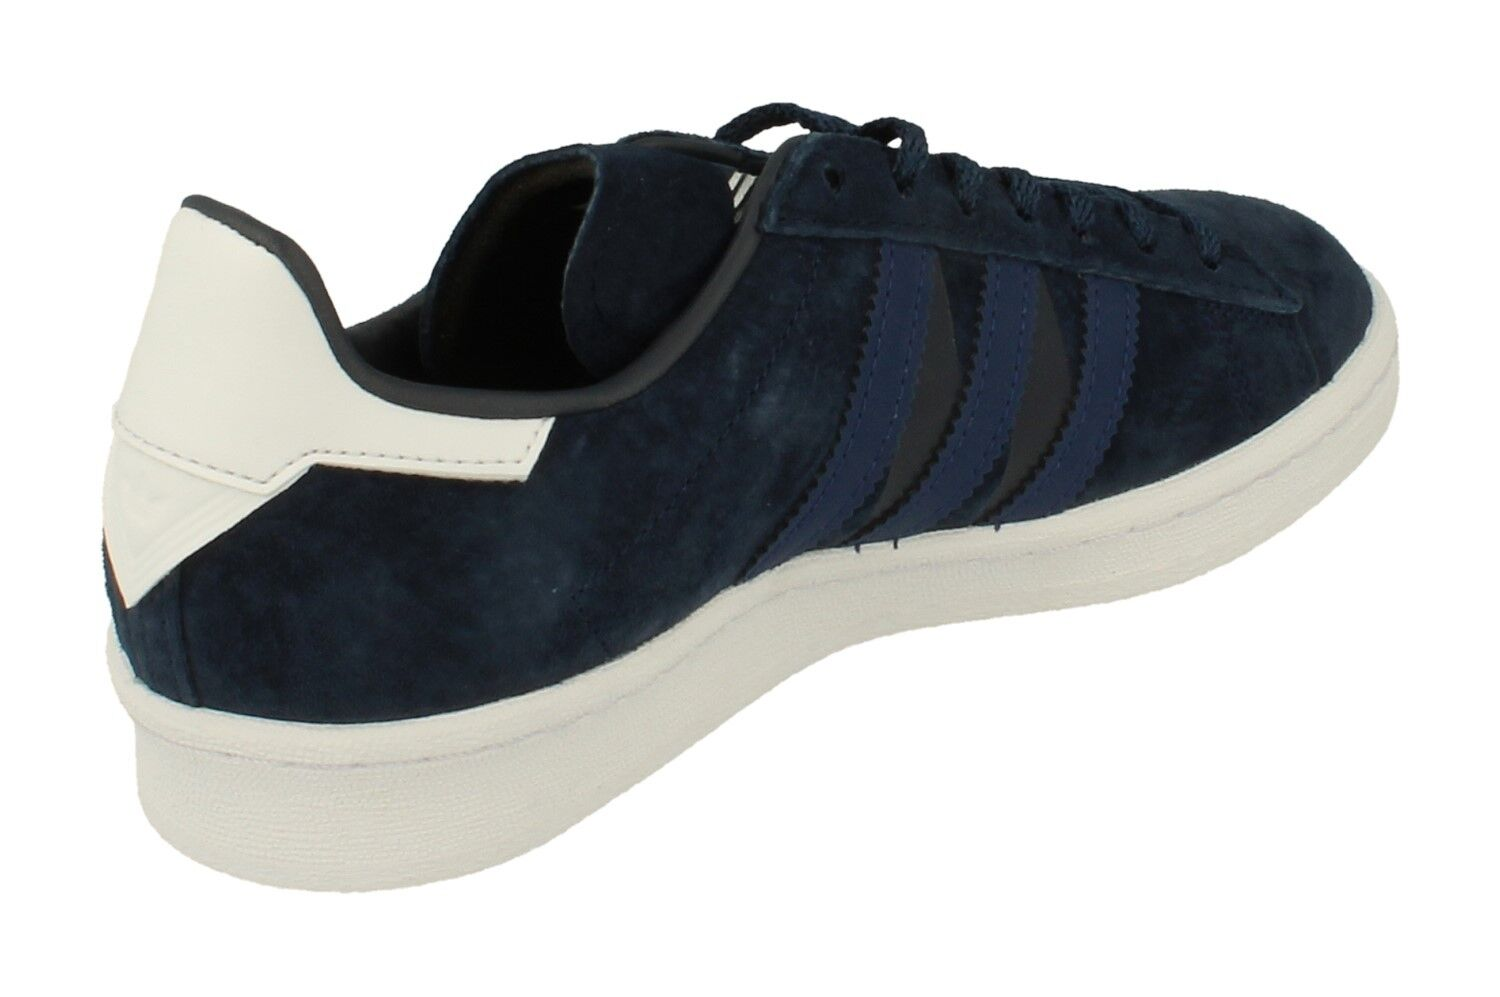 Adidas Originals WEISS Mountaineering Wm Campus 80S Mens Trainer Sneakers BA7517